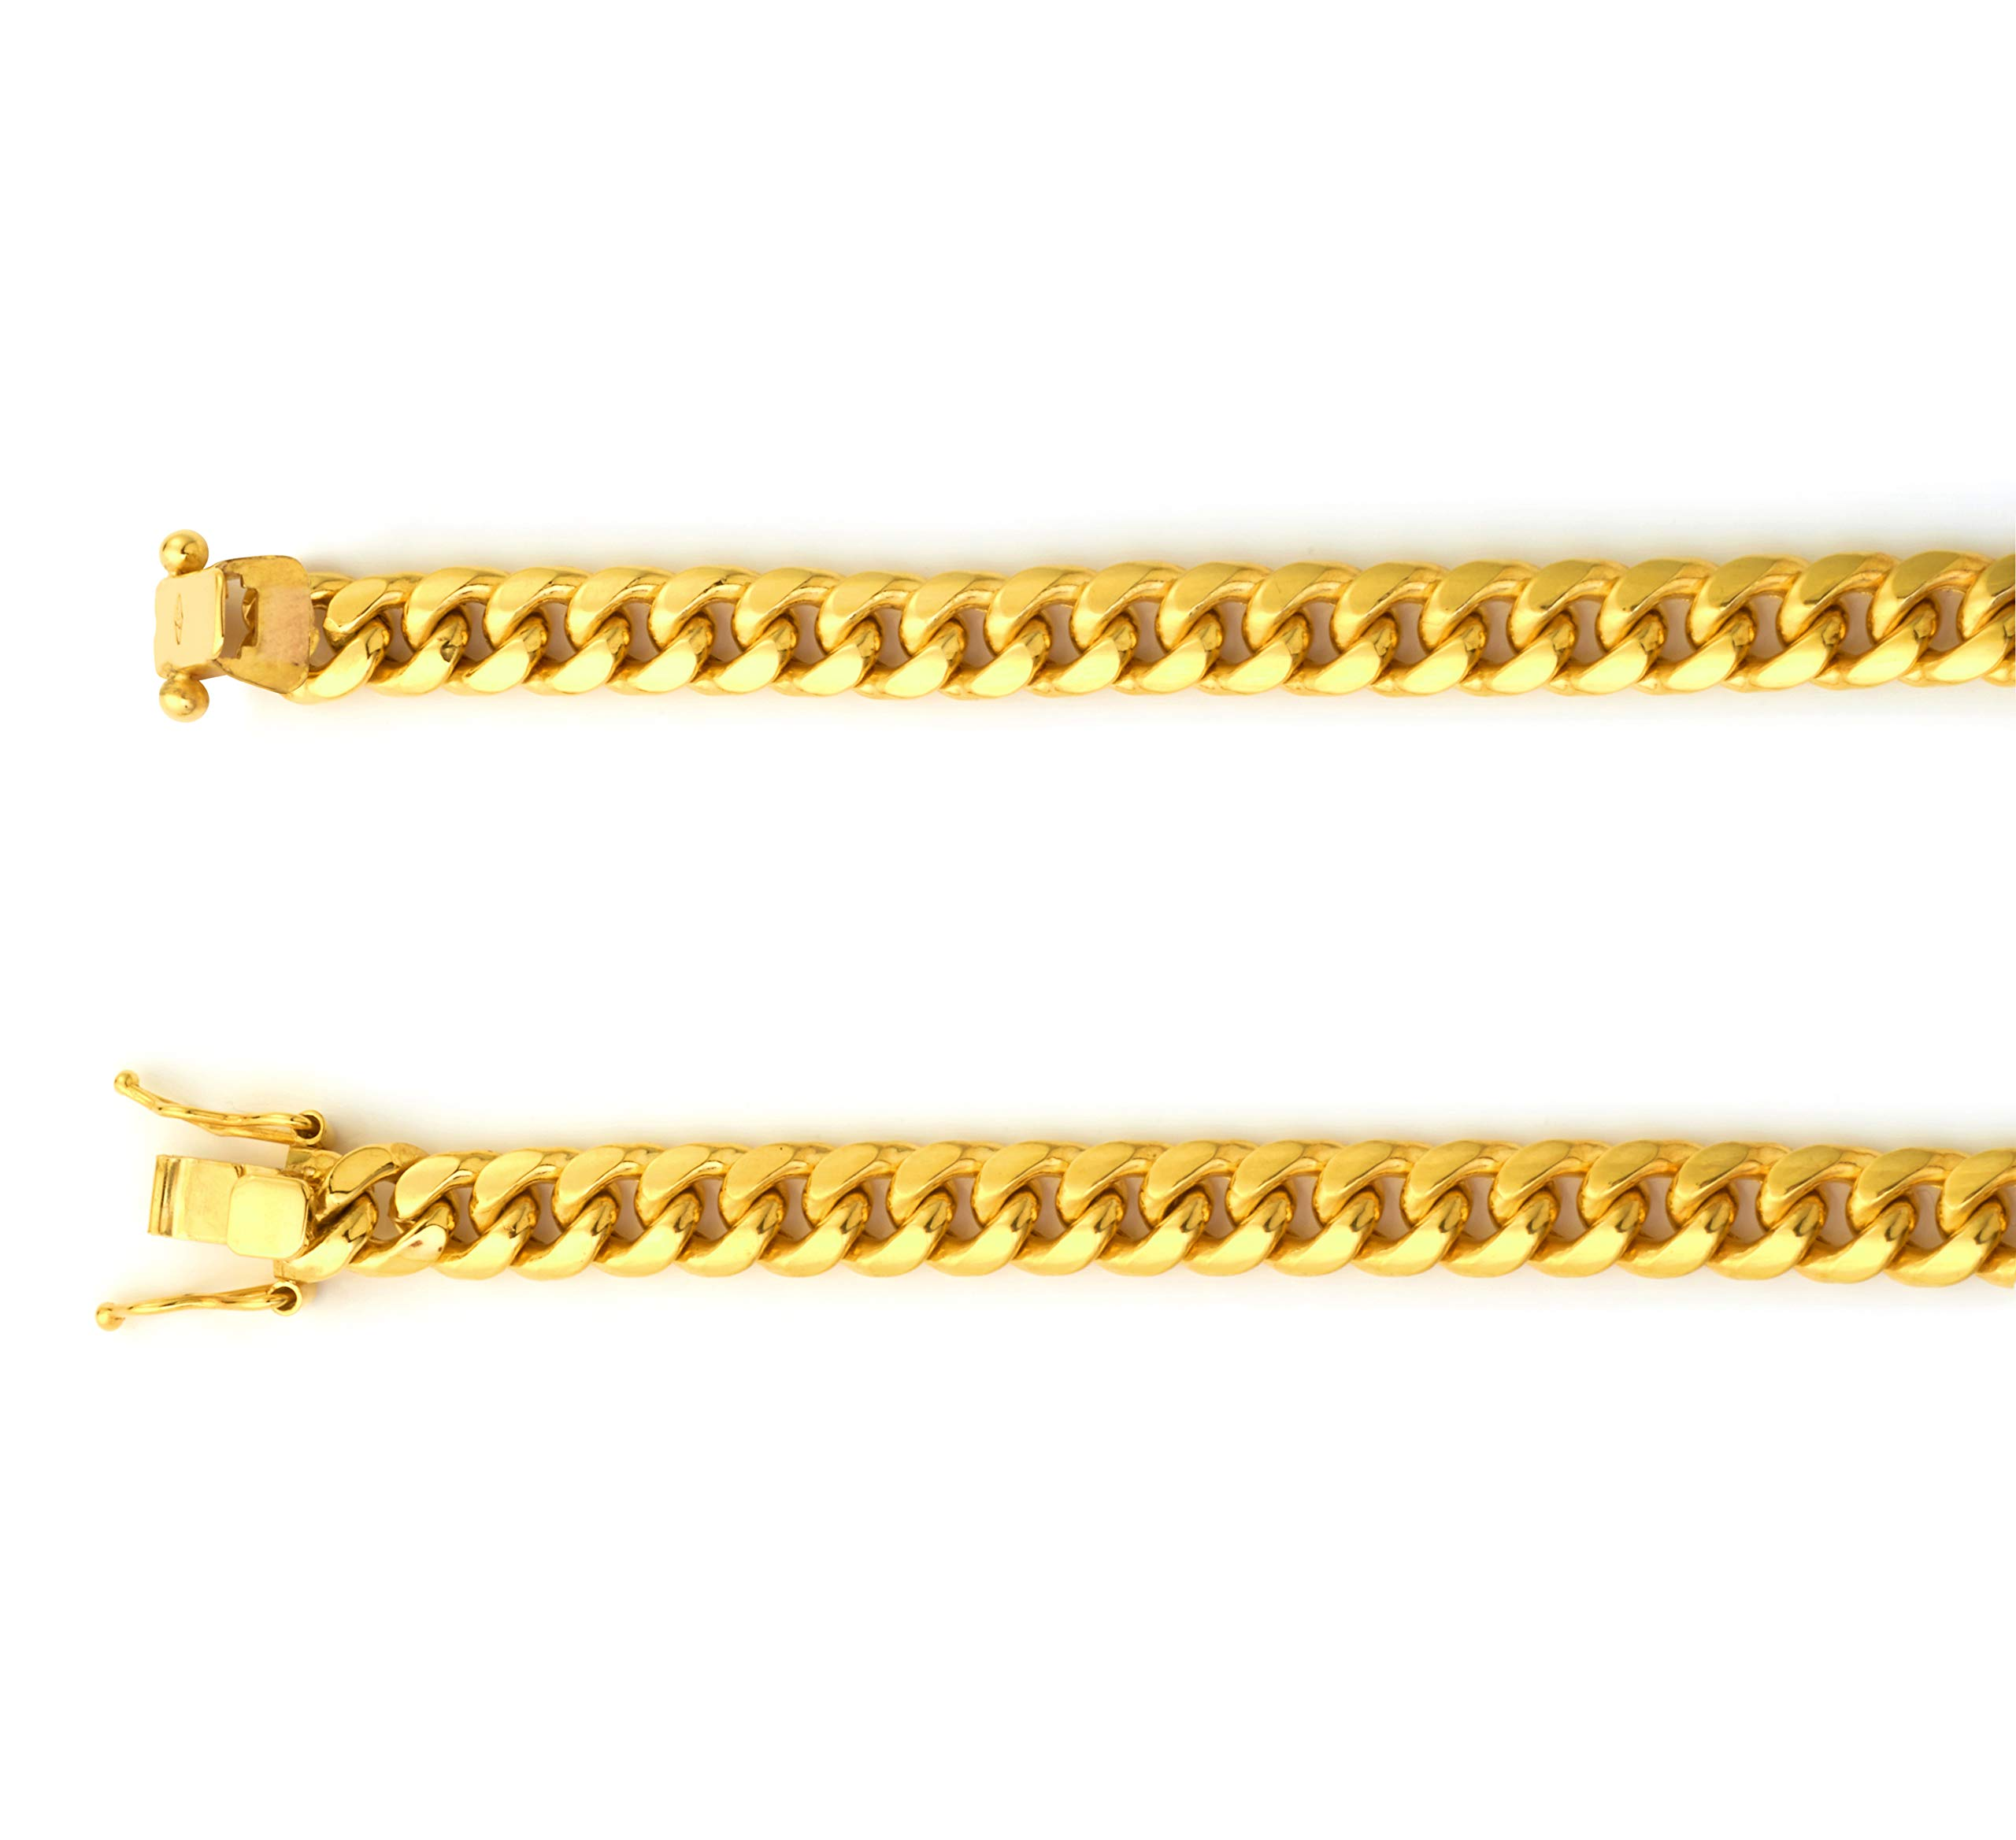 LOVEBLING 10K Yellow Gold 7.5mm Miami Cuban Link Chain Bracelet with Lobster Lock (Available in Lengths 8'', 8.5'', 9'') (8) by LOVEBLING